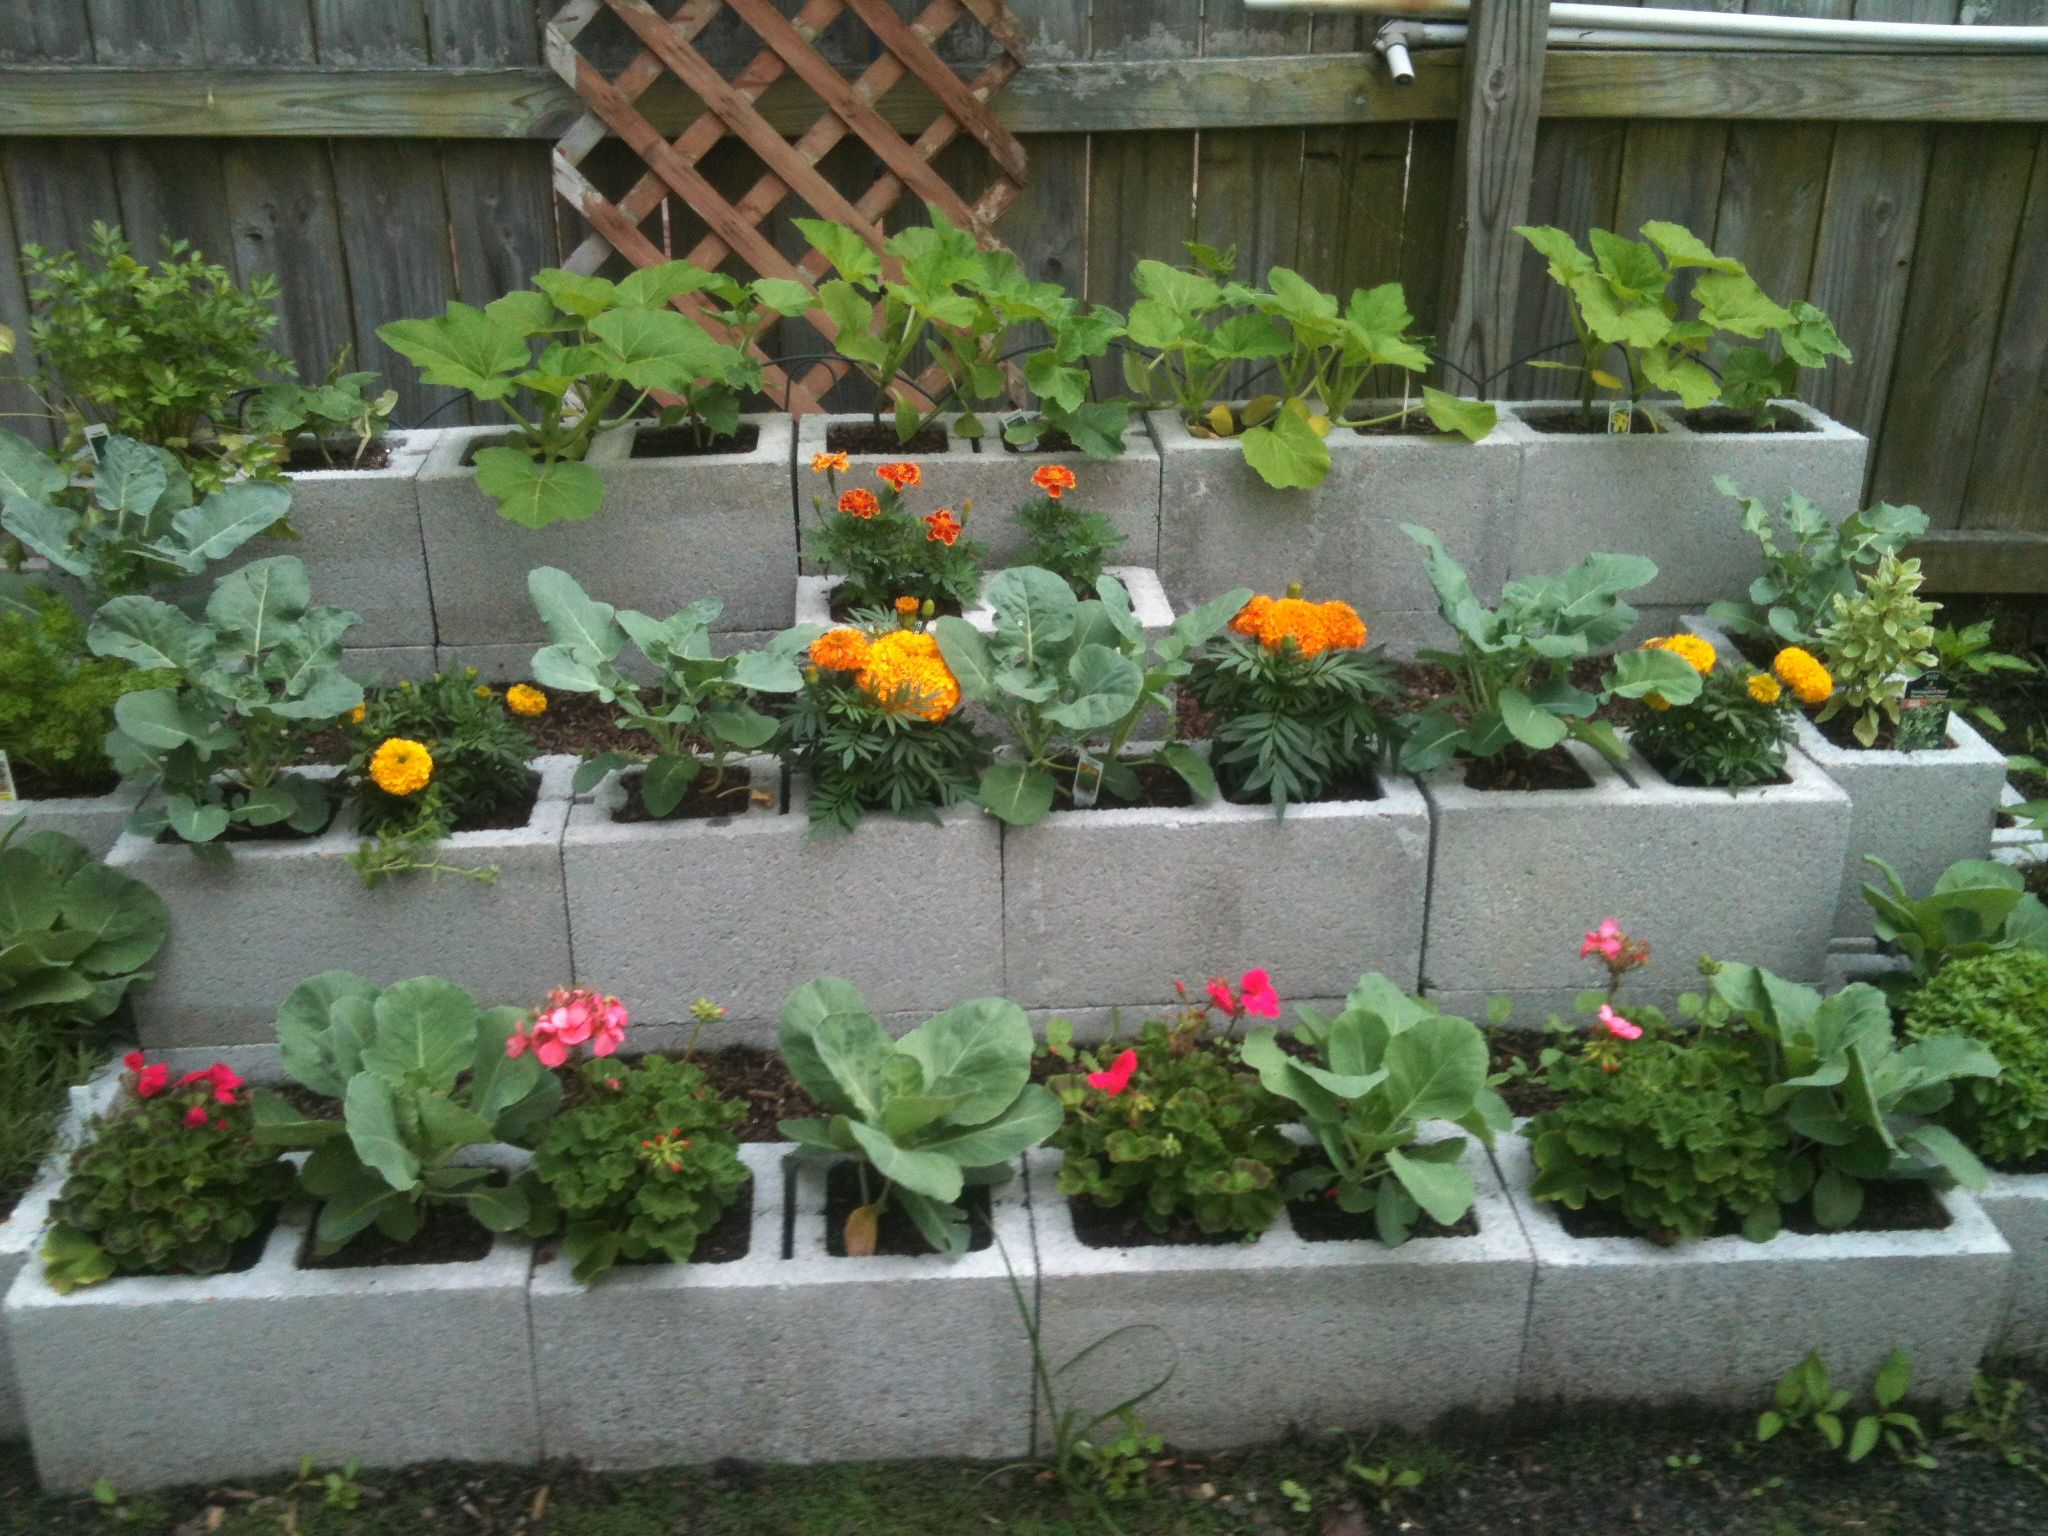 cinder block flower bed by Cindy E. | Growing herbs ... |Cinder Block Flower Bed Plans